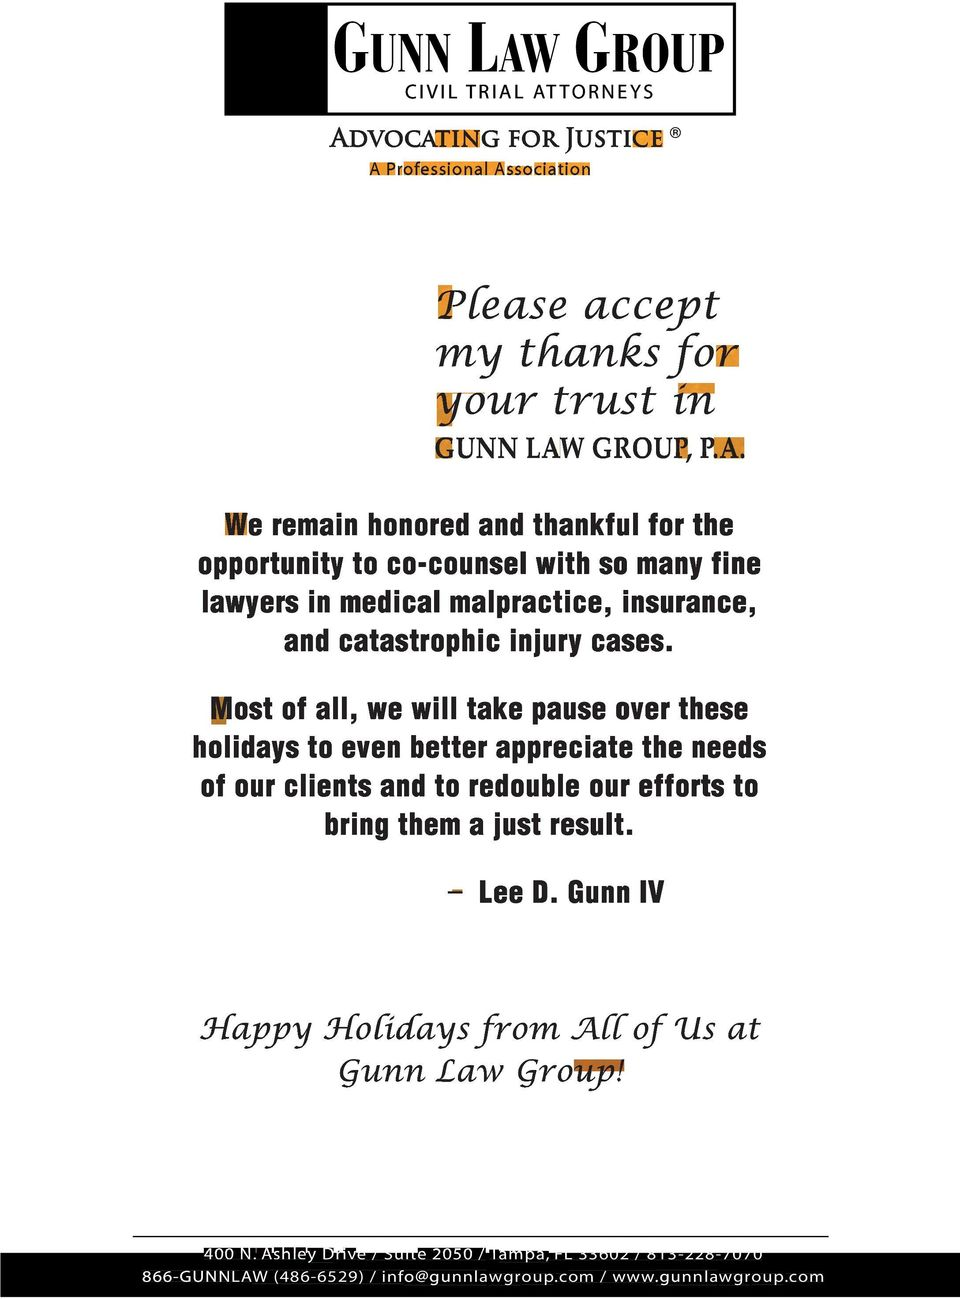 Gunn IV Happy Holidays from All of Us at Gunn Law Group! 400N. Ashley Drive / Suite 2050 / Tampa, FL 33602 / 813-228-7070 866-GUNNLAW (486-6529) / info@gunnlawgroup.